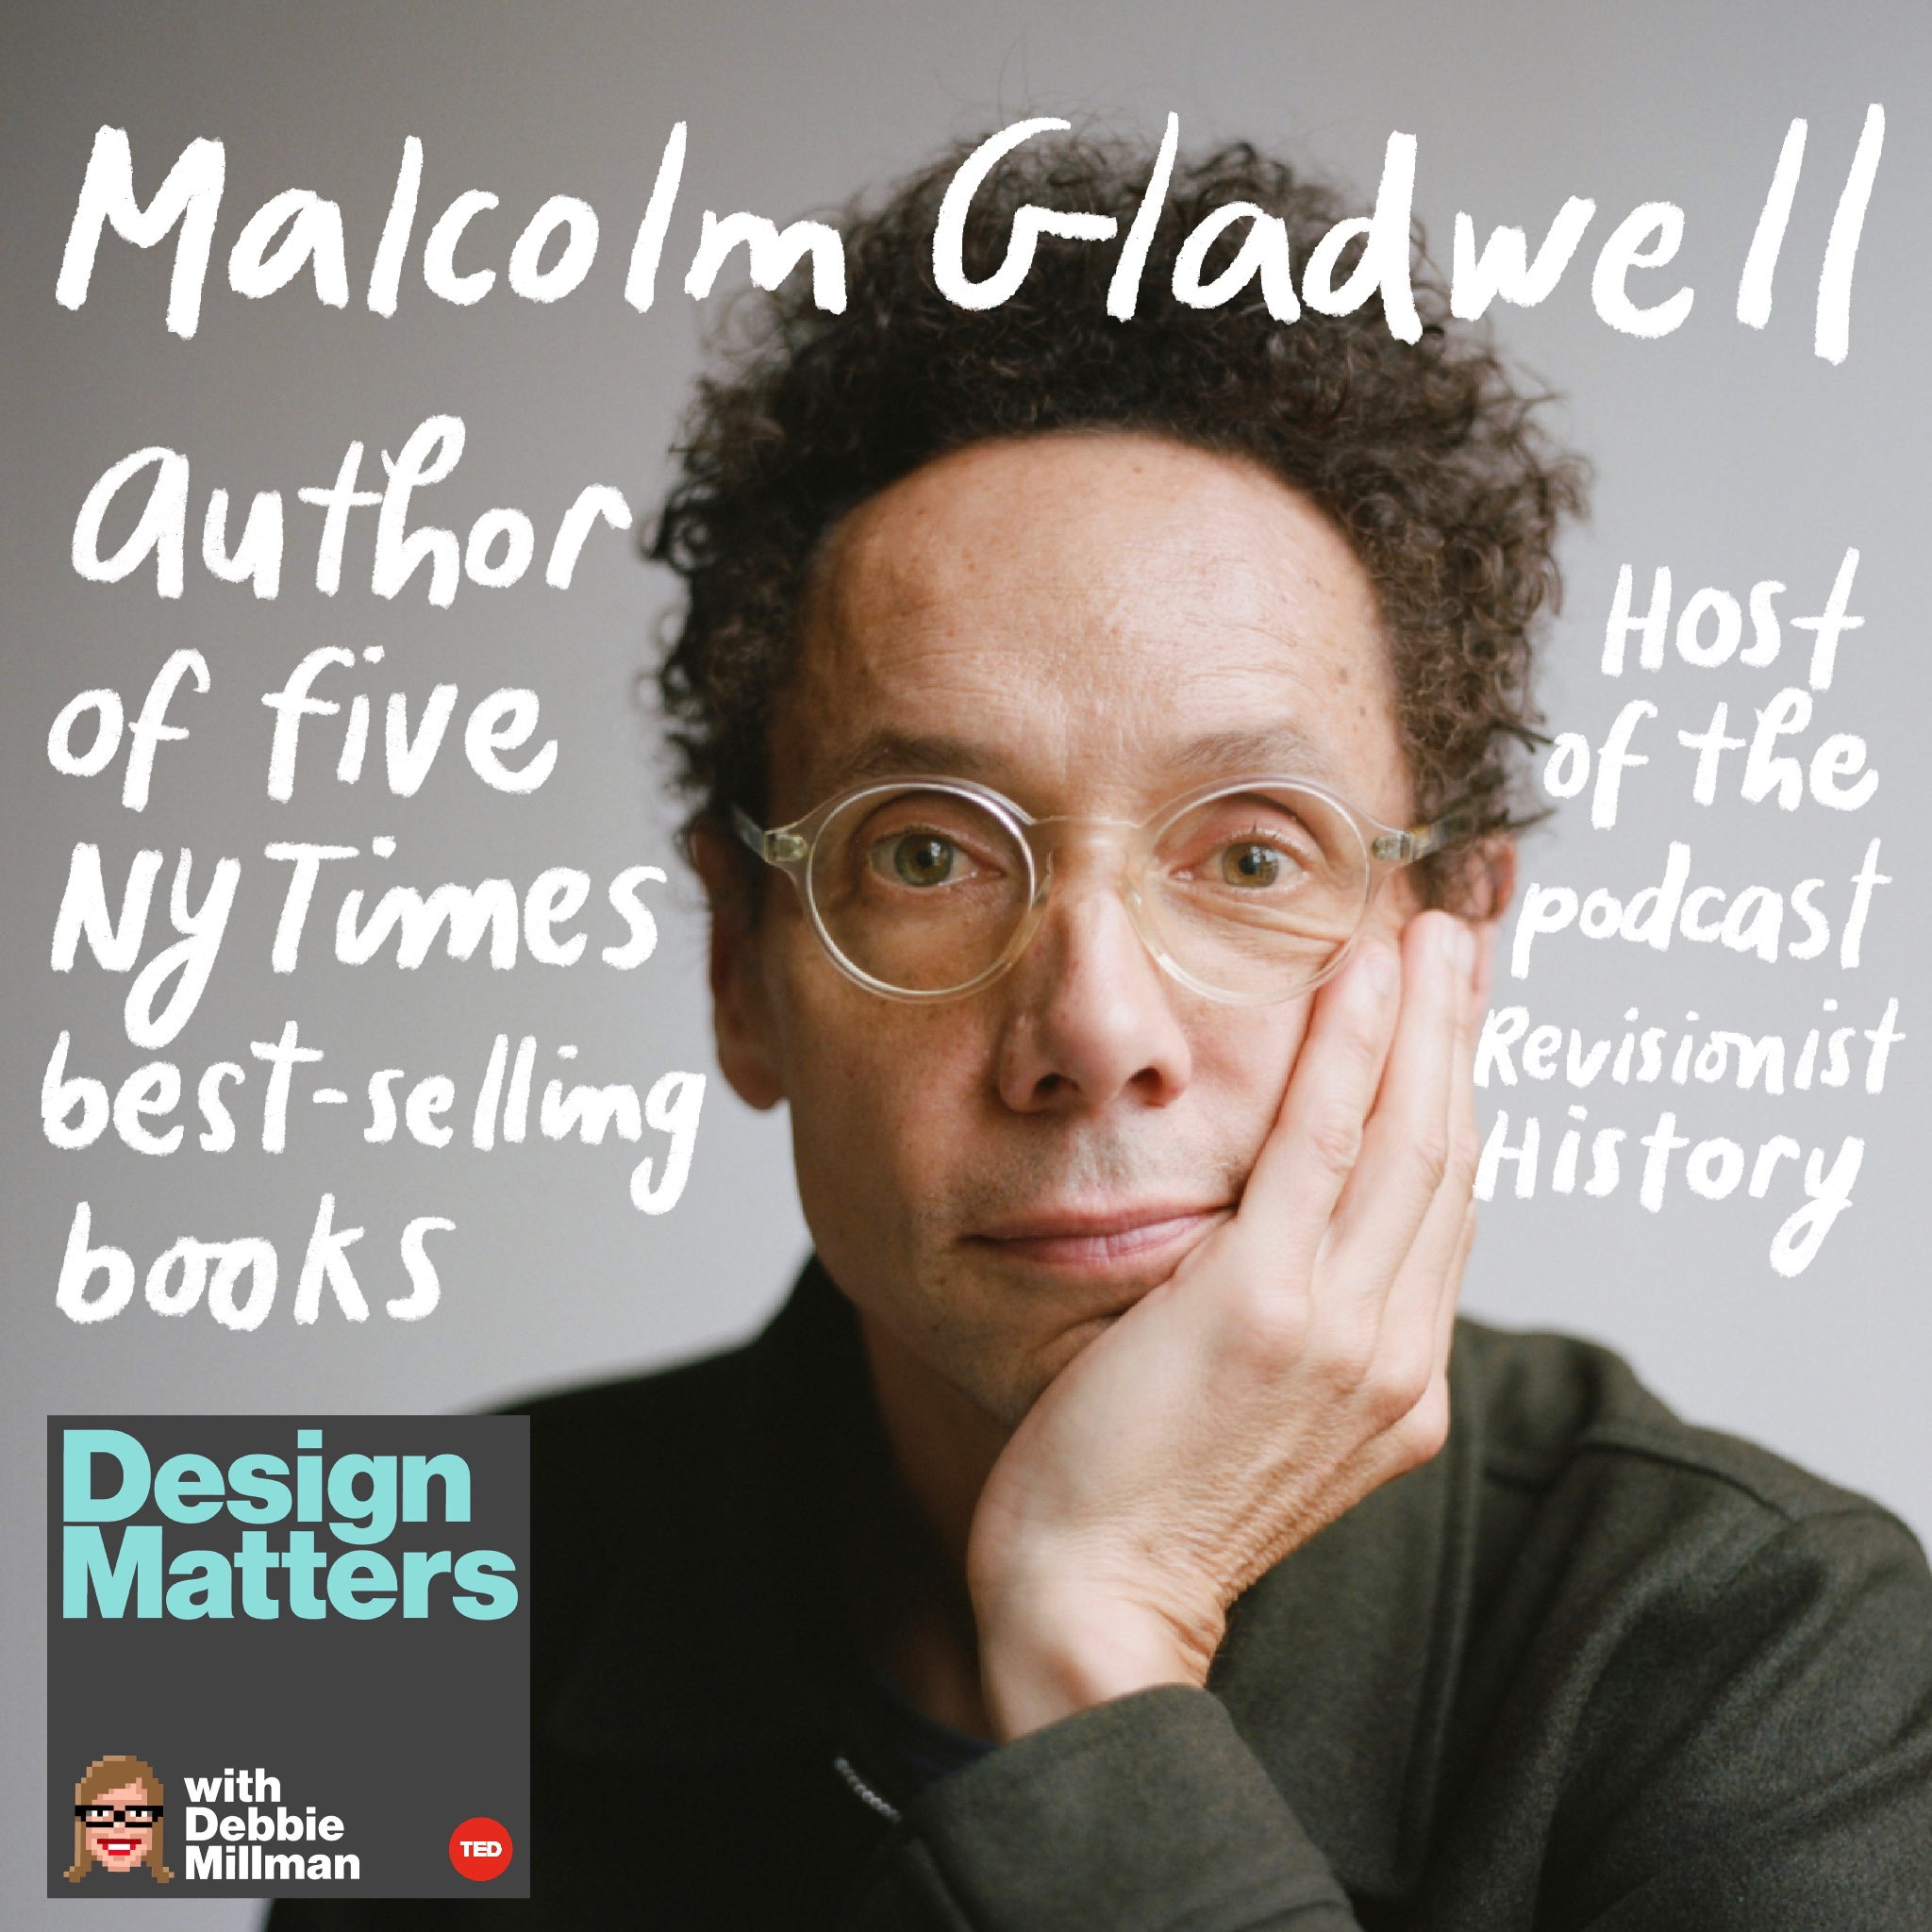 Design Matters From the Archive: Malcolm Gladwell